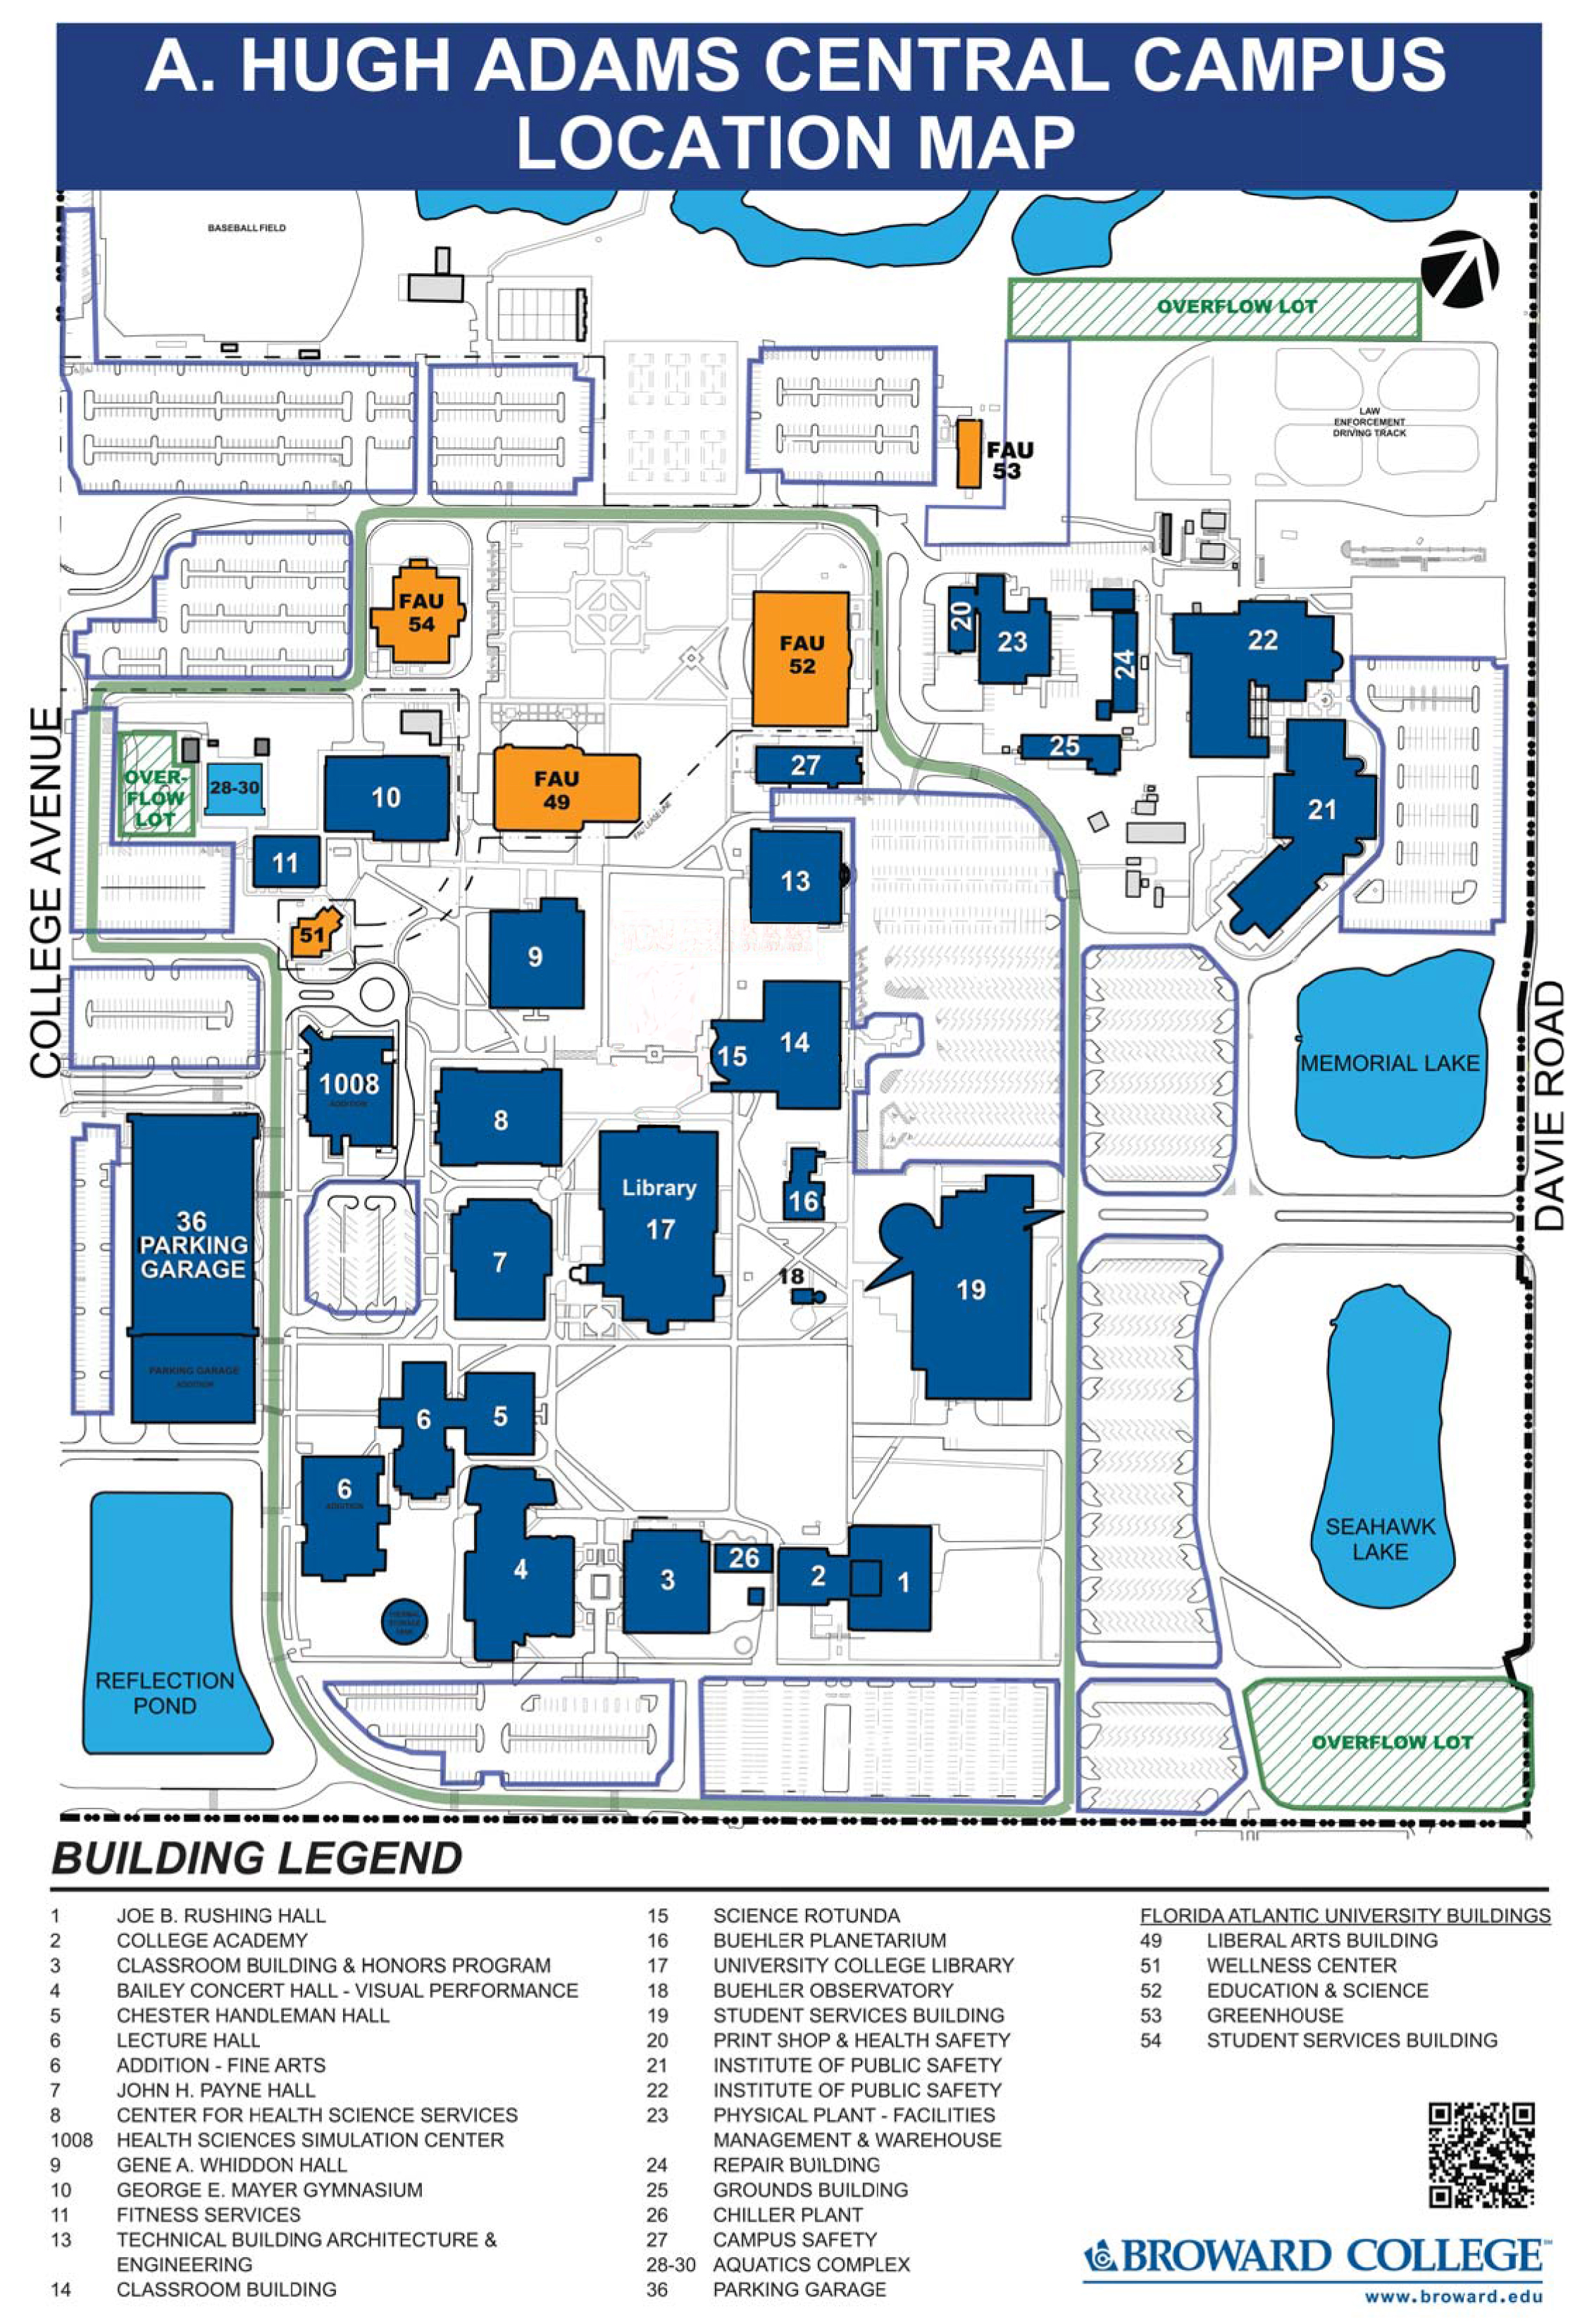 Cpcc Main Campus Map.Central Campus Map Park Ideas